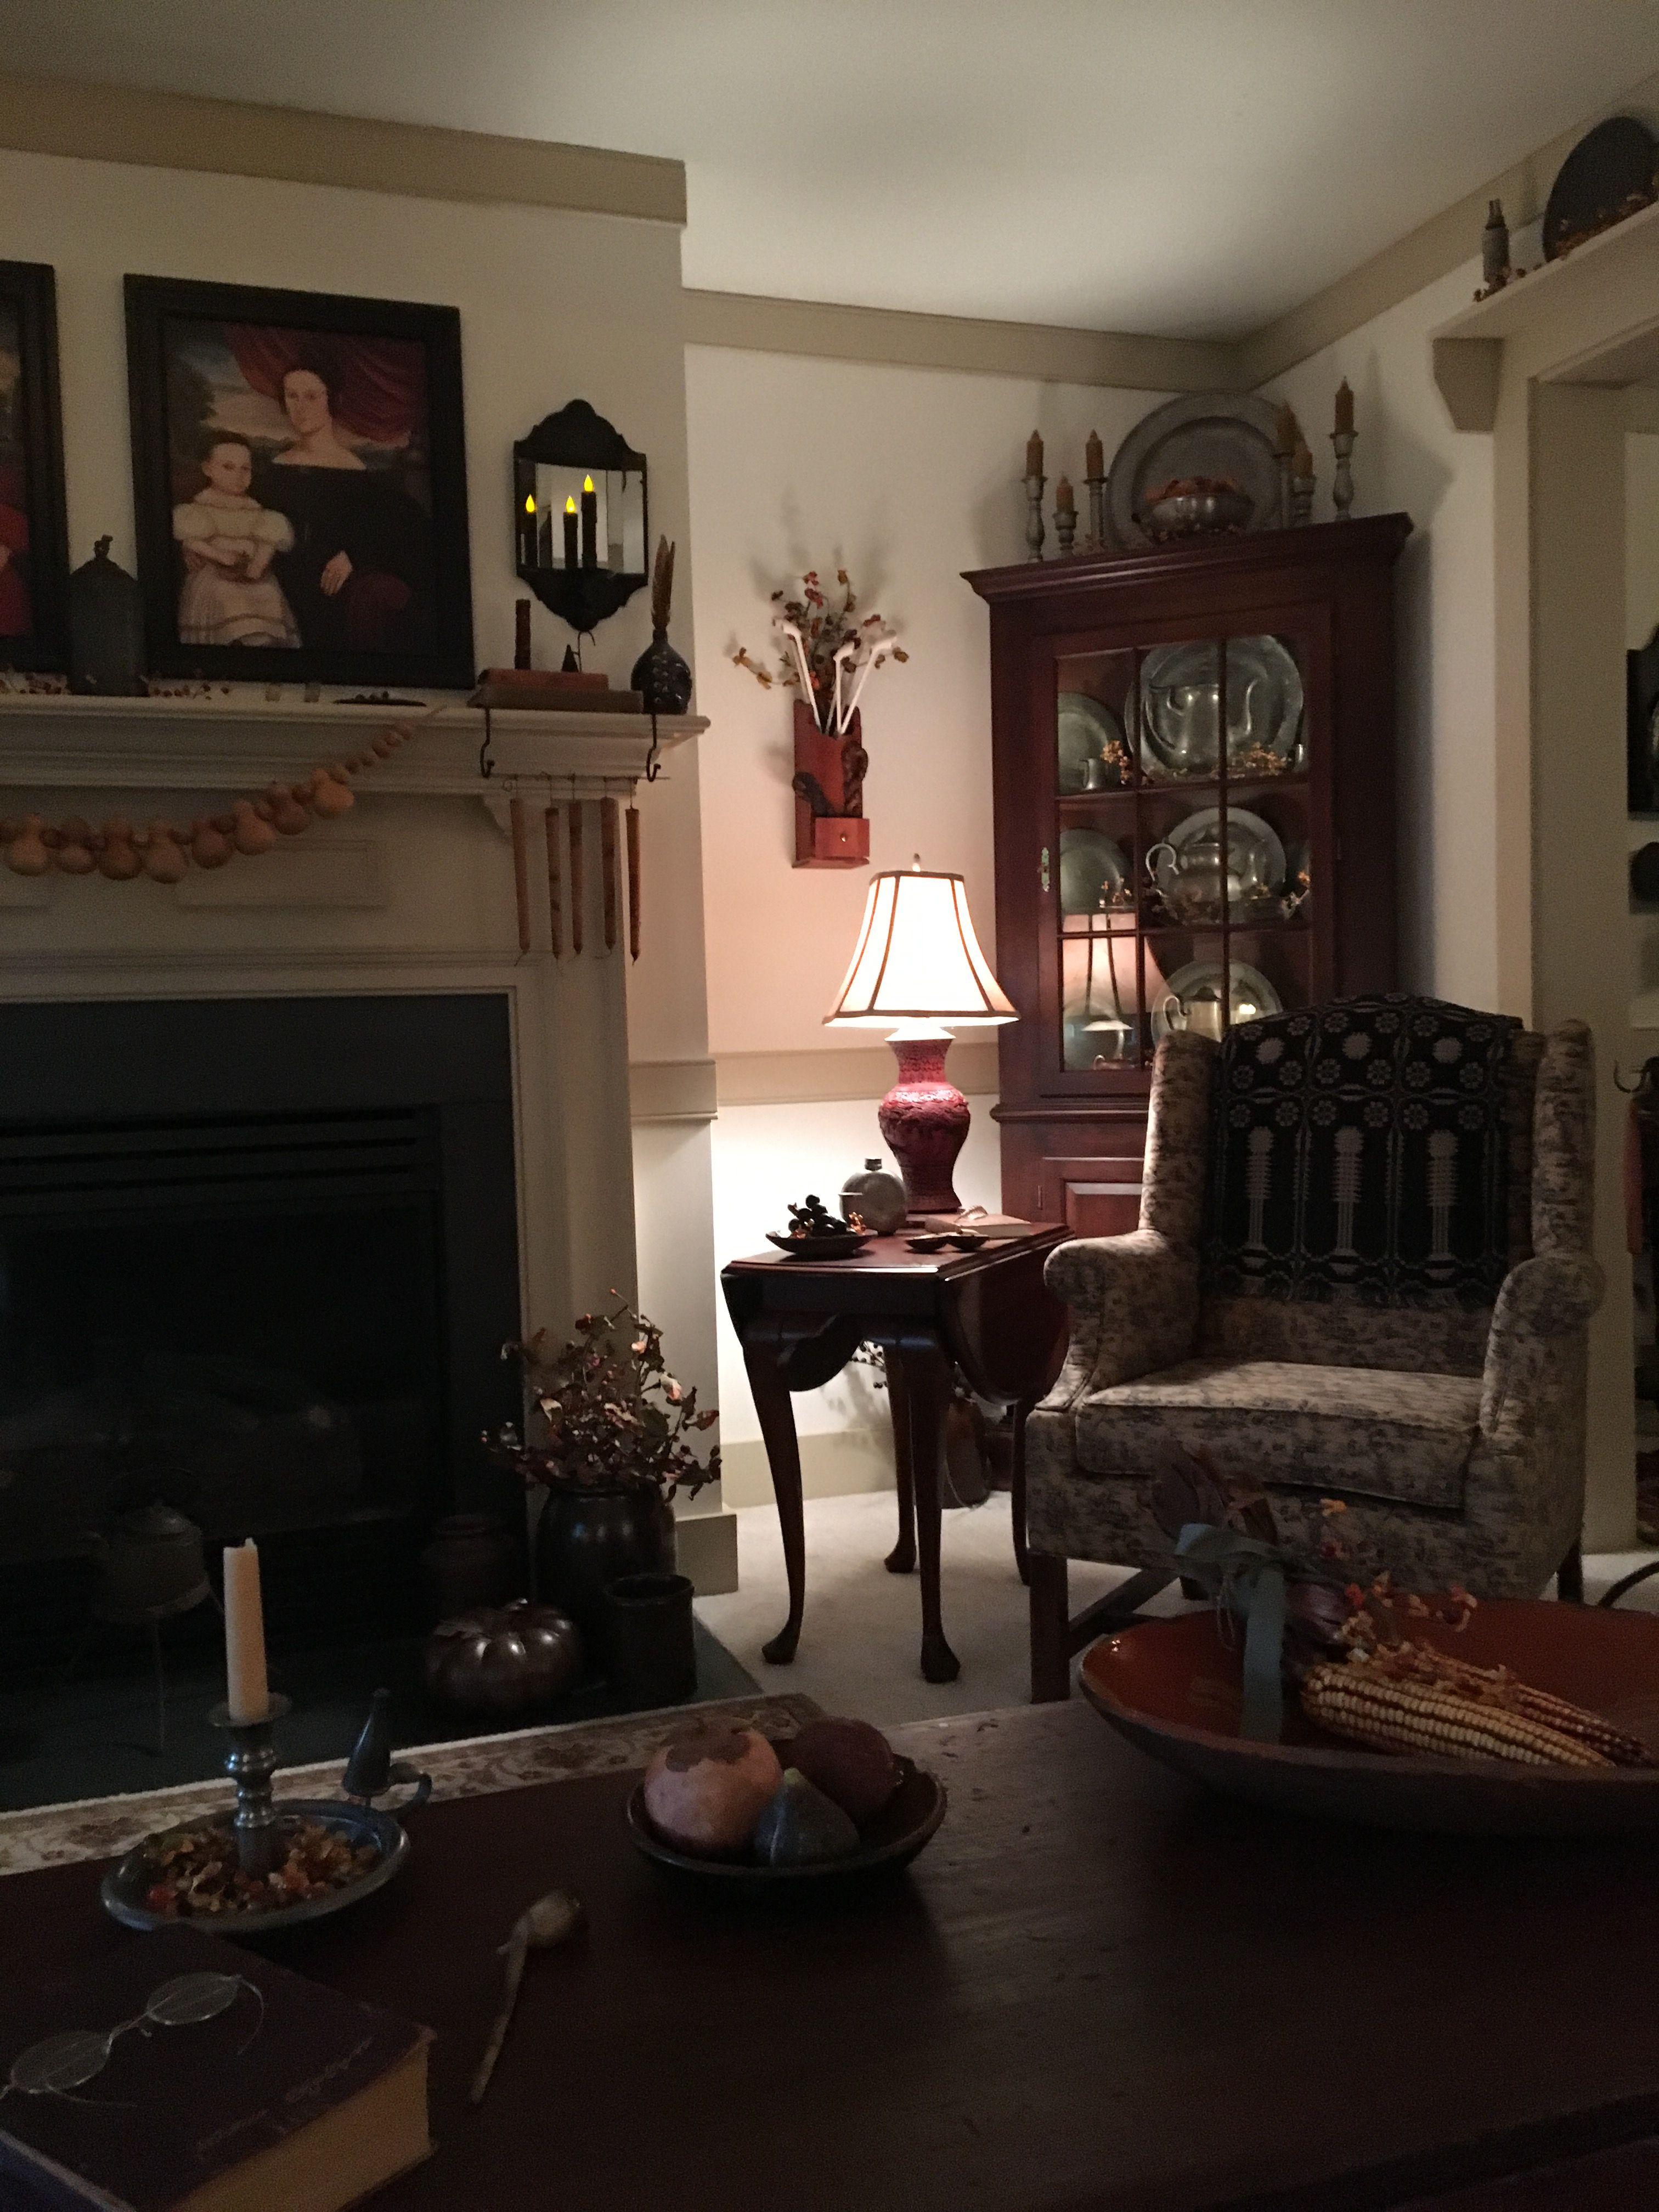 3 furnishings China closet with dishes and fireplace with pictures